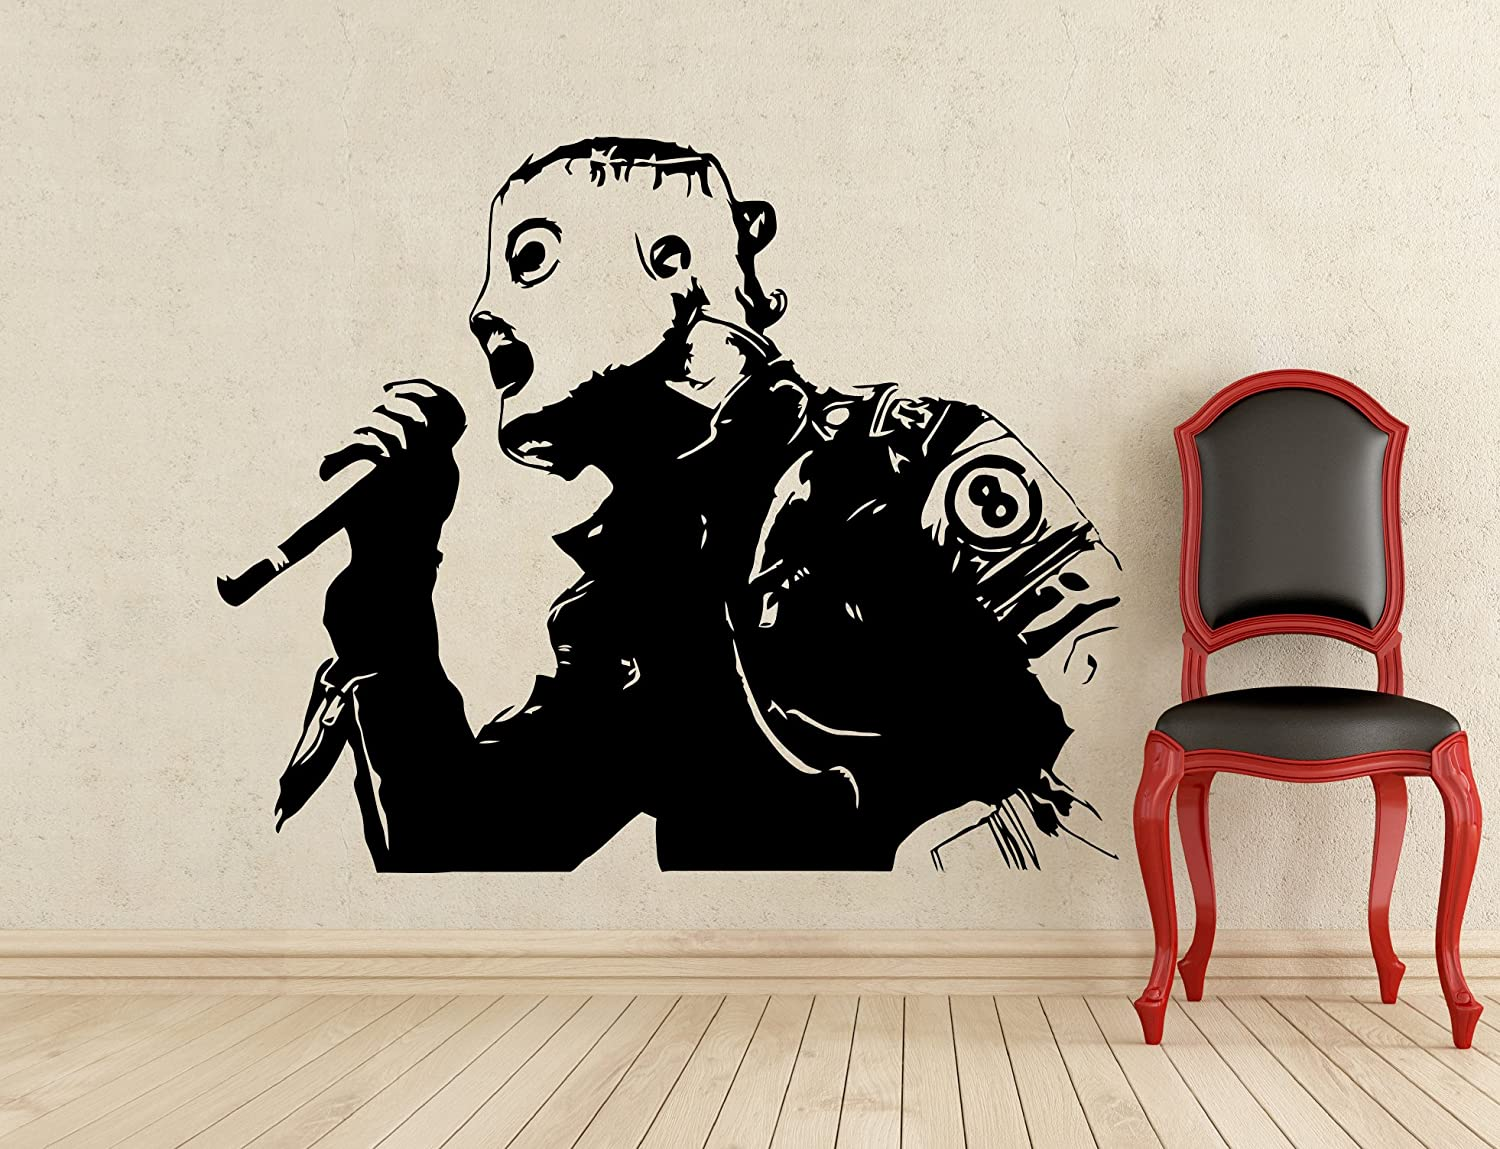 corey taylor slipknot wall decal music vinyl sticker home art wall corey taylor slipknot wall decal music vinyl sticker home art wall decor mural removable waterproof decal 218s amazon com